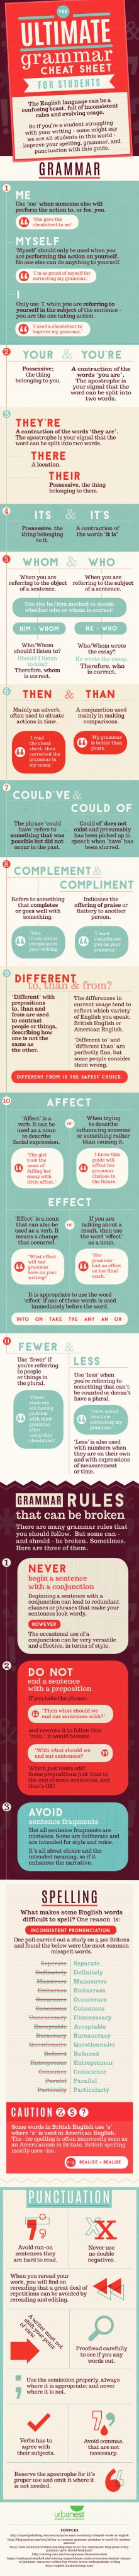 Infographic: The Ultimate English Grammar Cheat Sheet Infographic